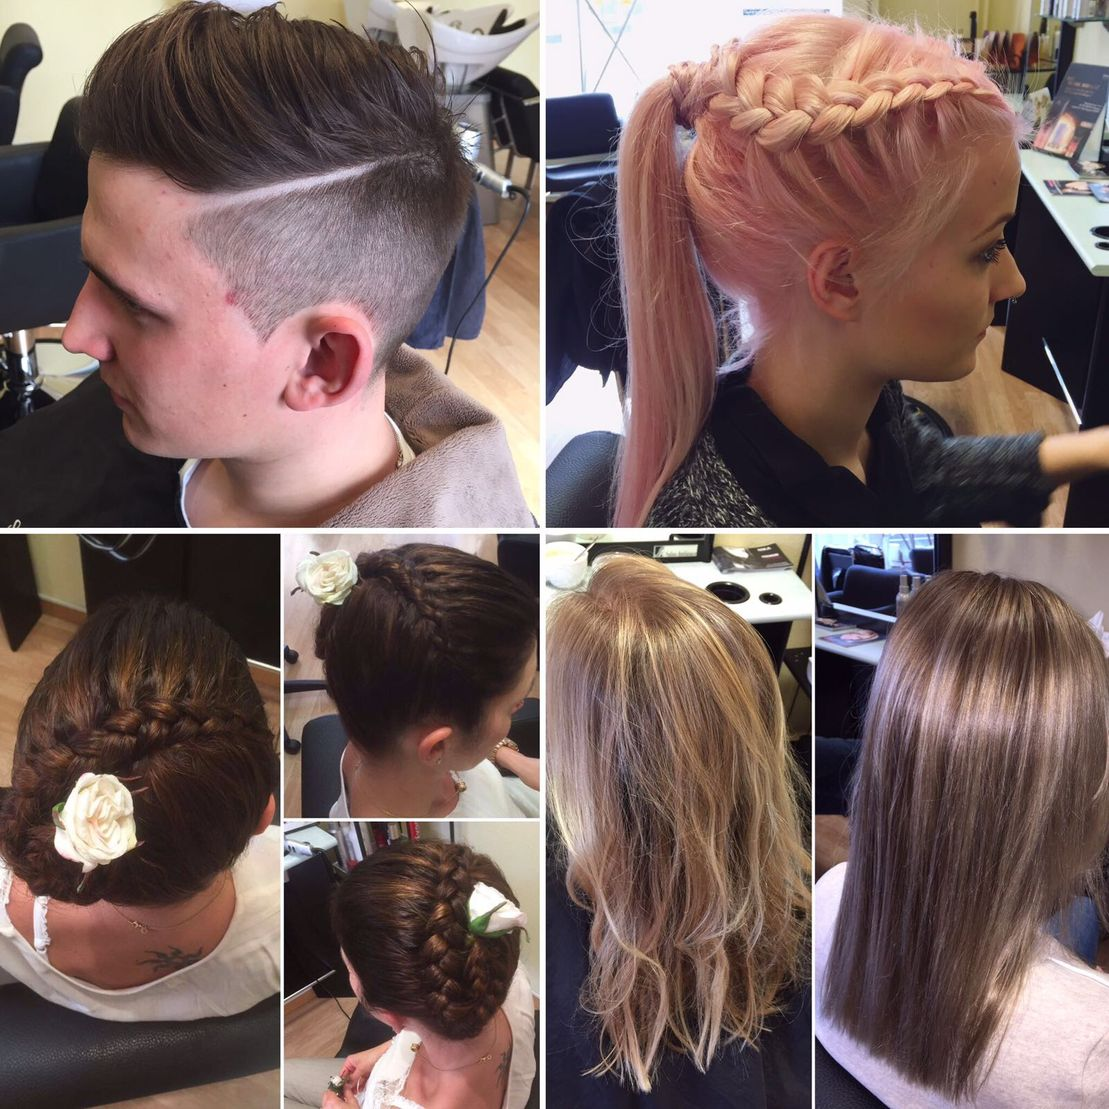 Hairstyling - Art Coiffeur